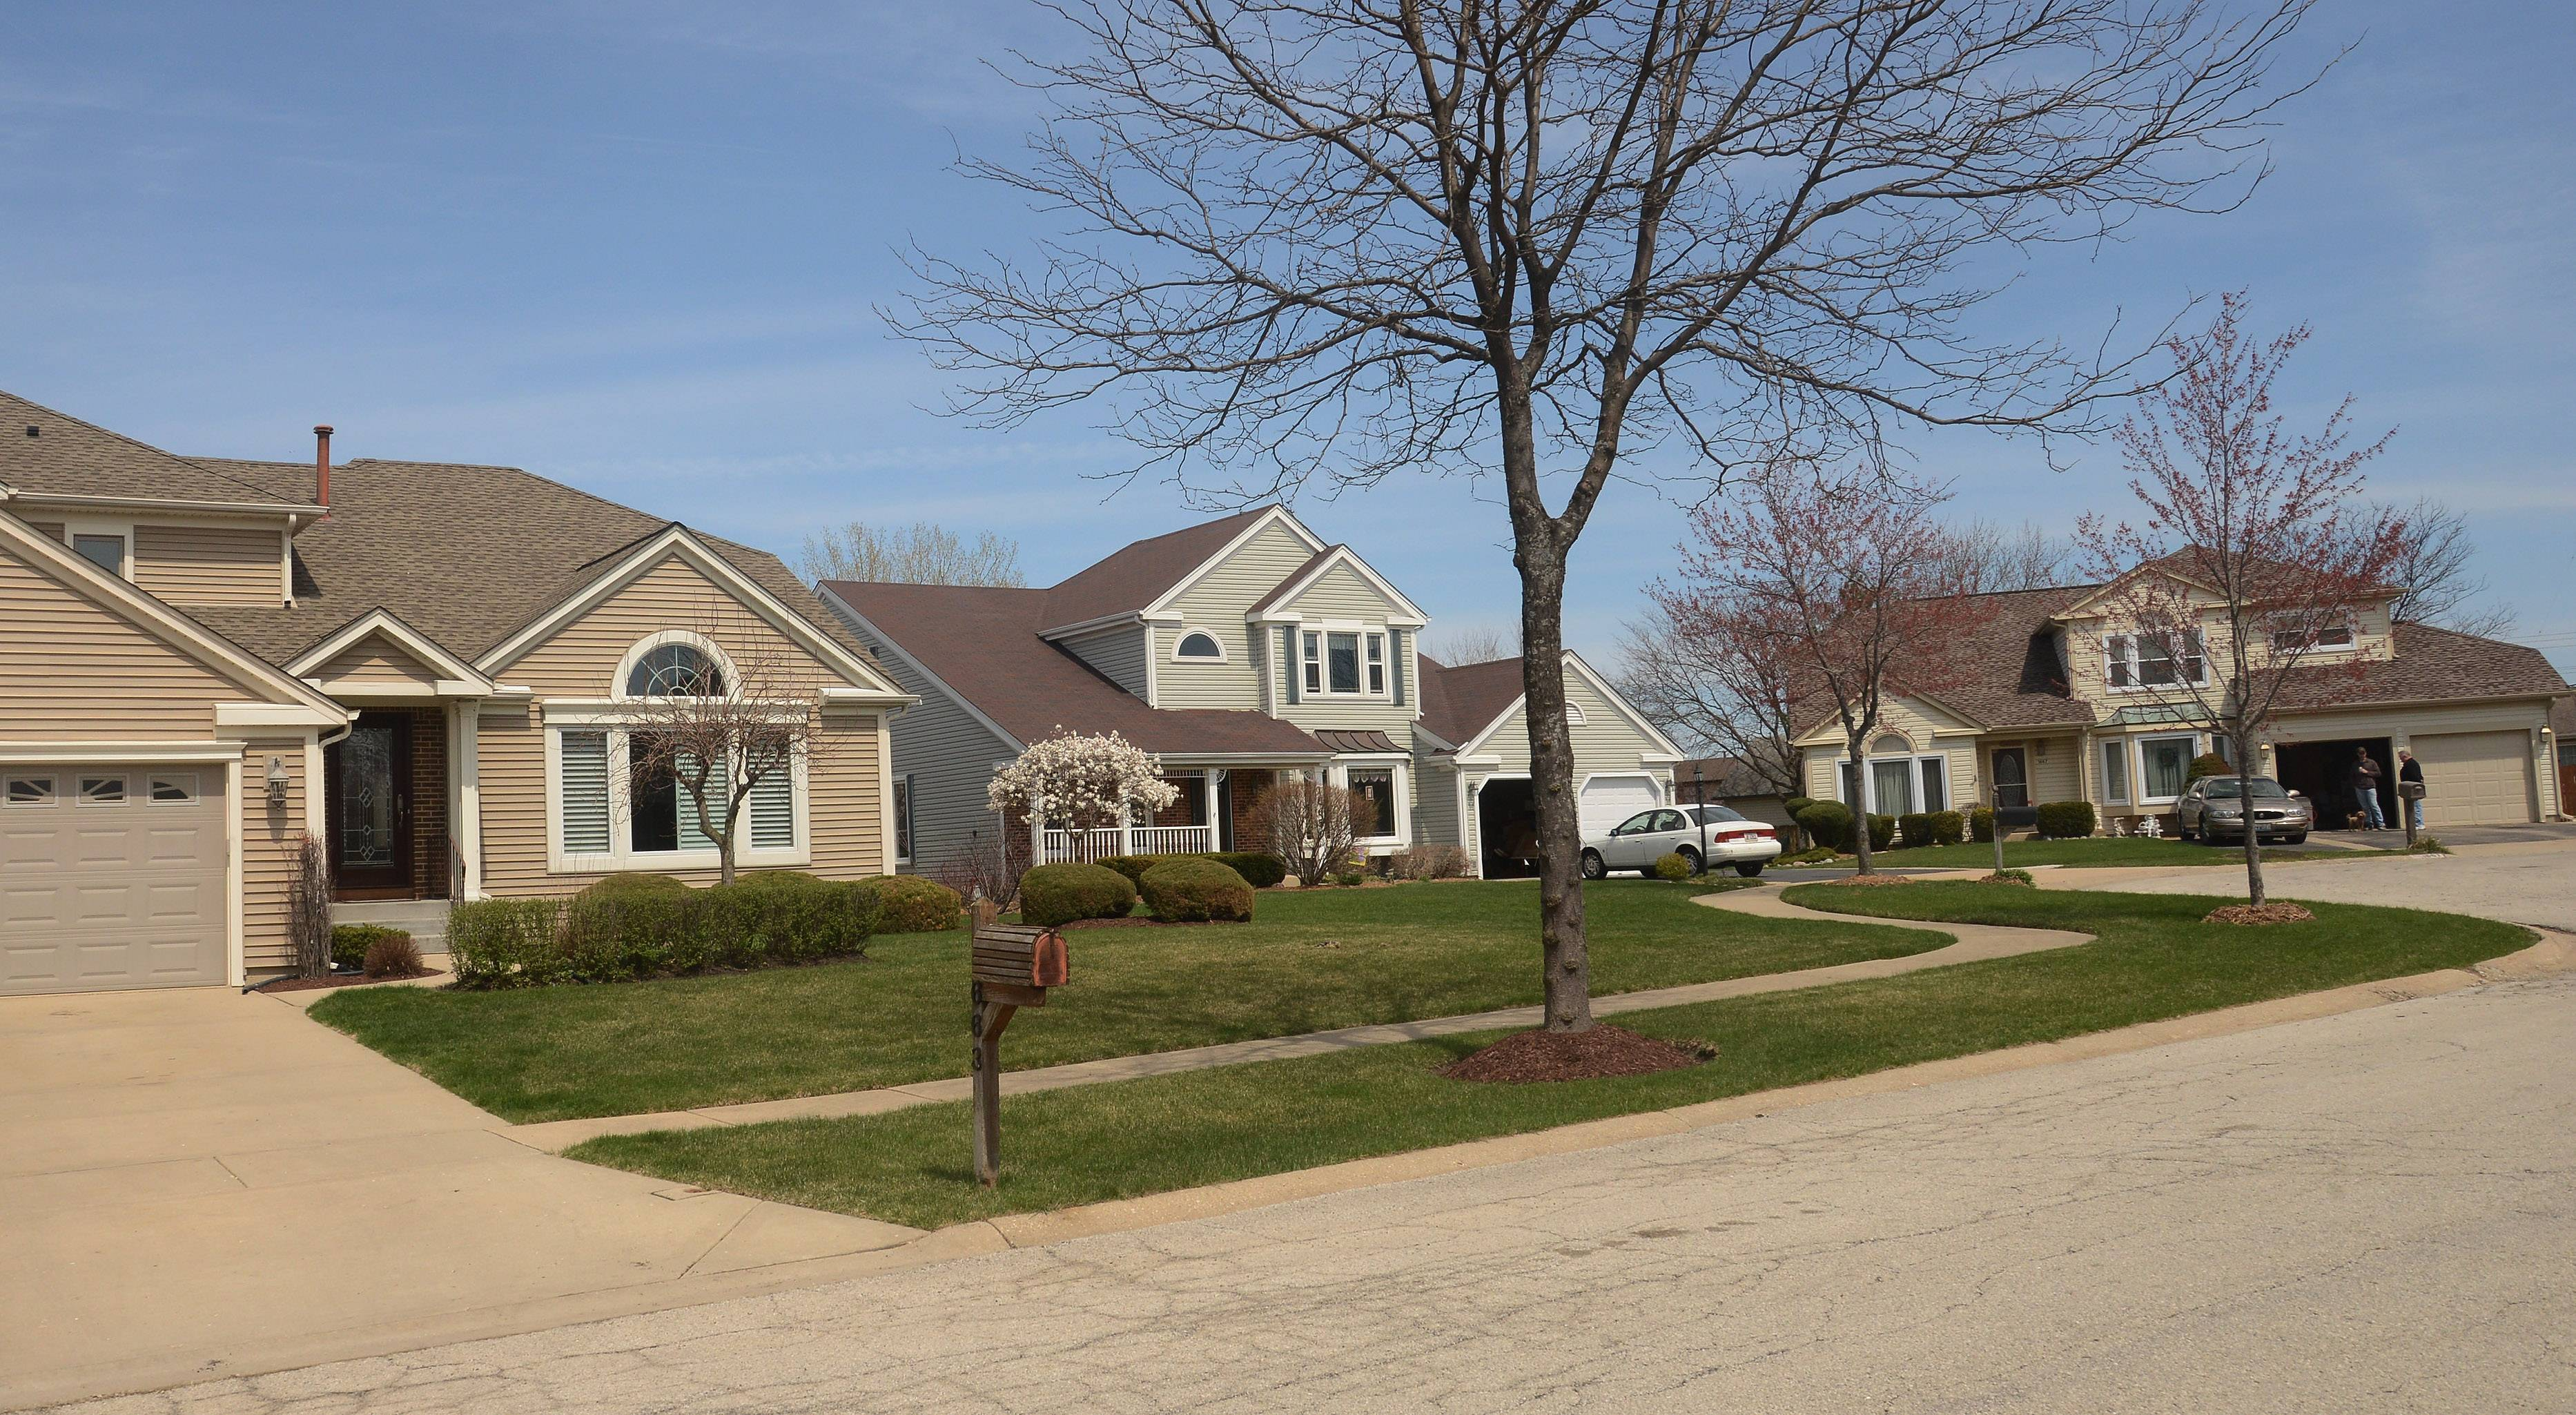 Homes in Elk Grove Village's Stockbridge neighborhood are among the newer ones in town. These houses on Salem Court have New England flavor.